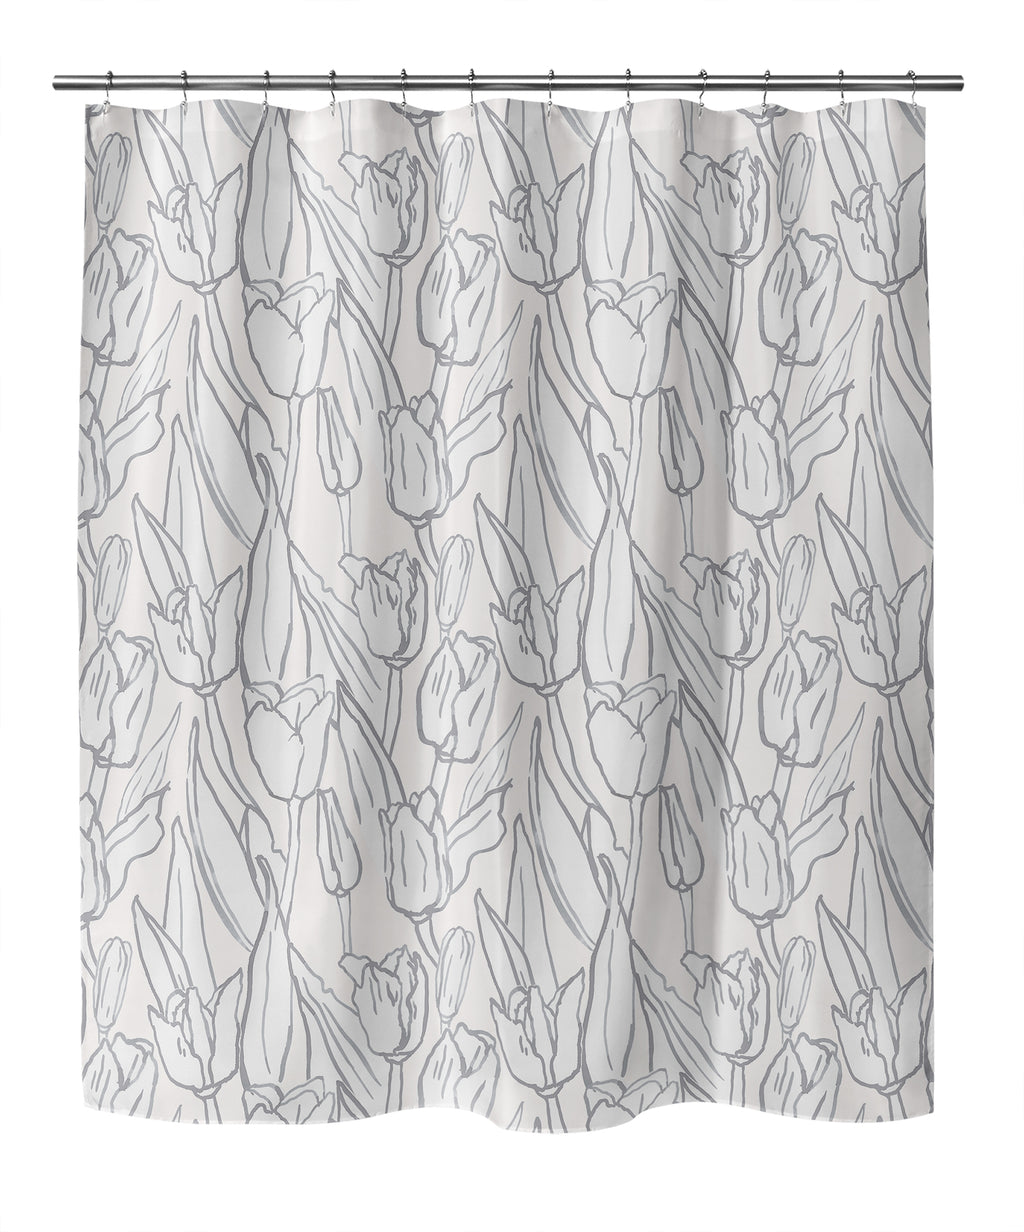 TULIP FIELD GREY Shower Curtain By Becky Bailey